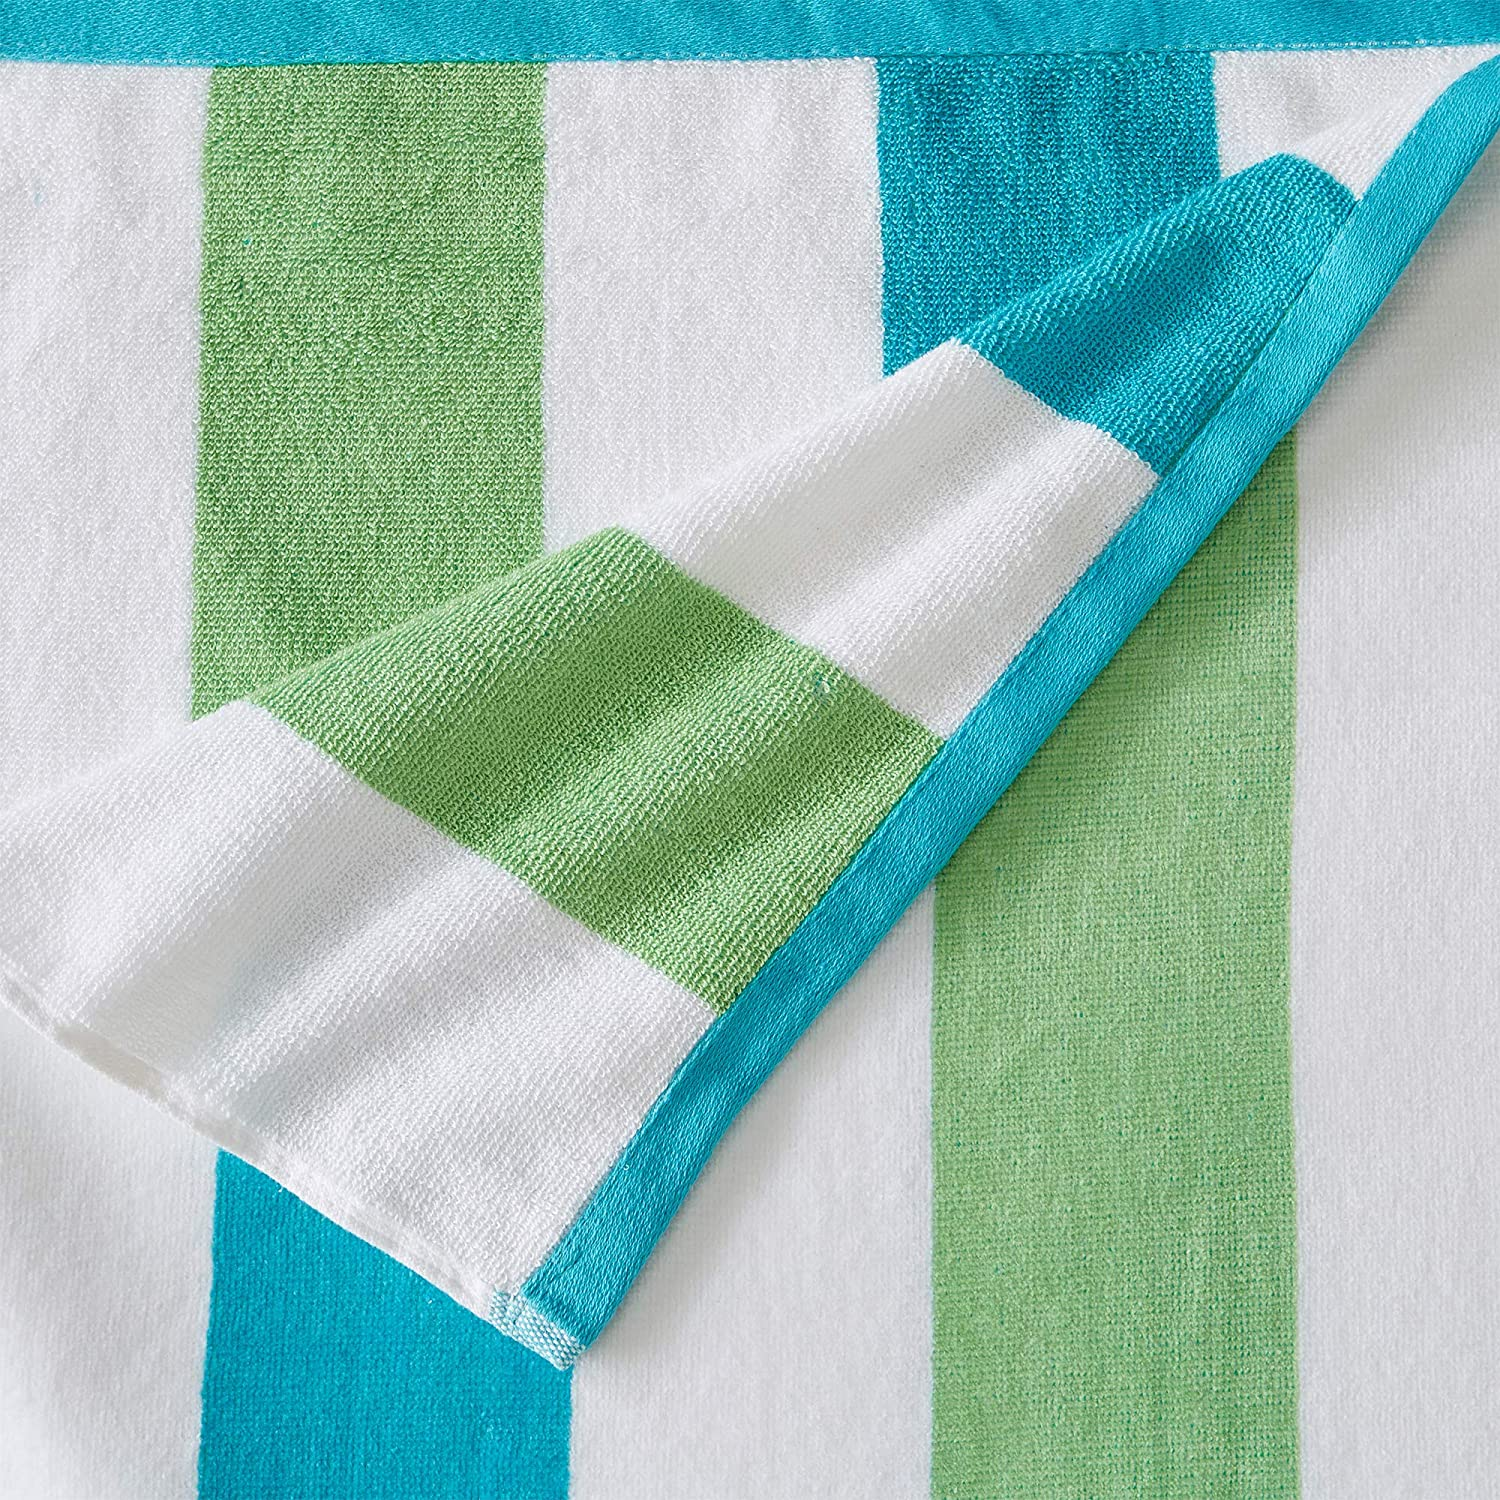 4 Pack Reversible Plush Velour 100/% Cotton Beach Towels Sunset Bay Collection Aqua//Green Cabana Stripe Pool Towels for Adults 30 x 60